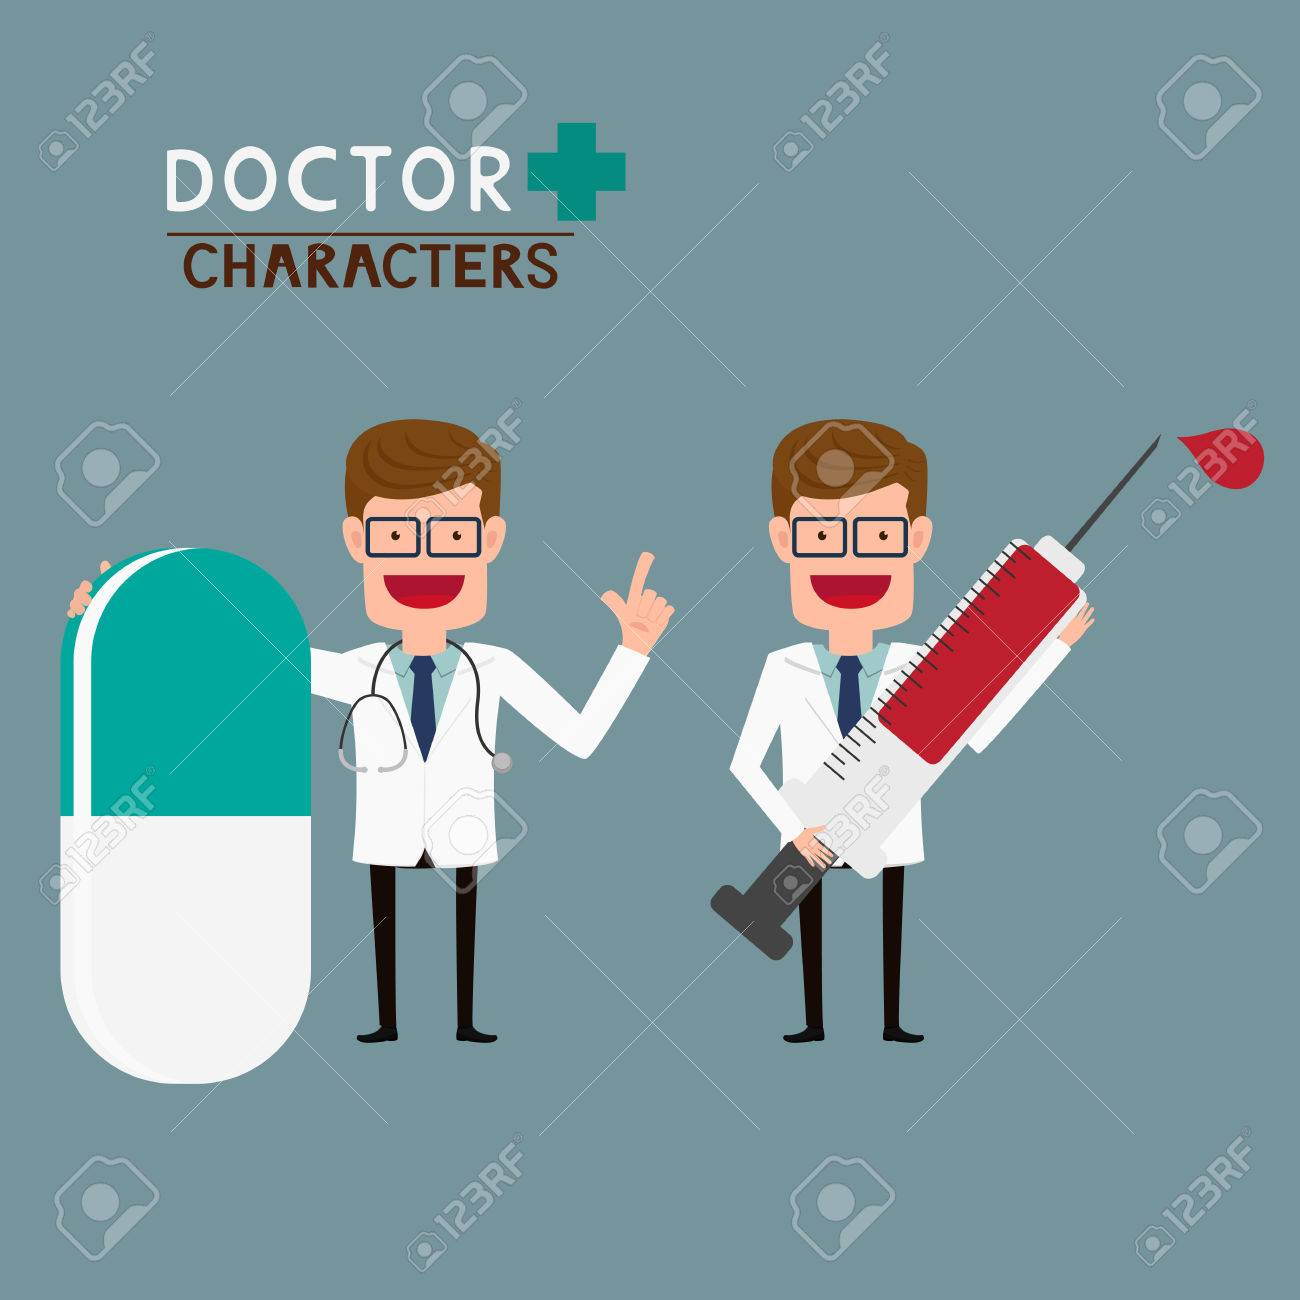 Doctor characters. - 42217831